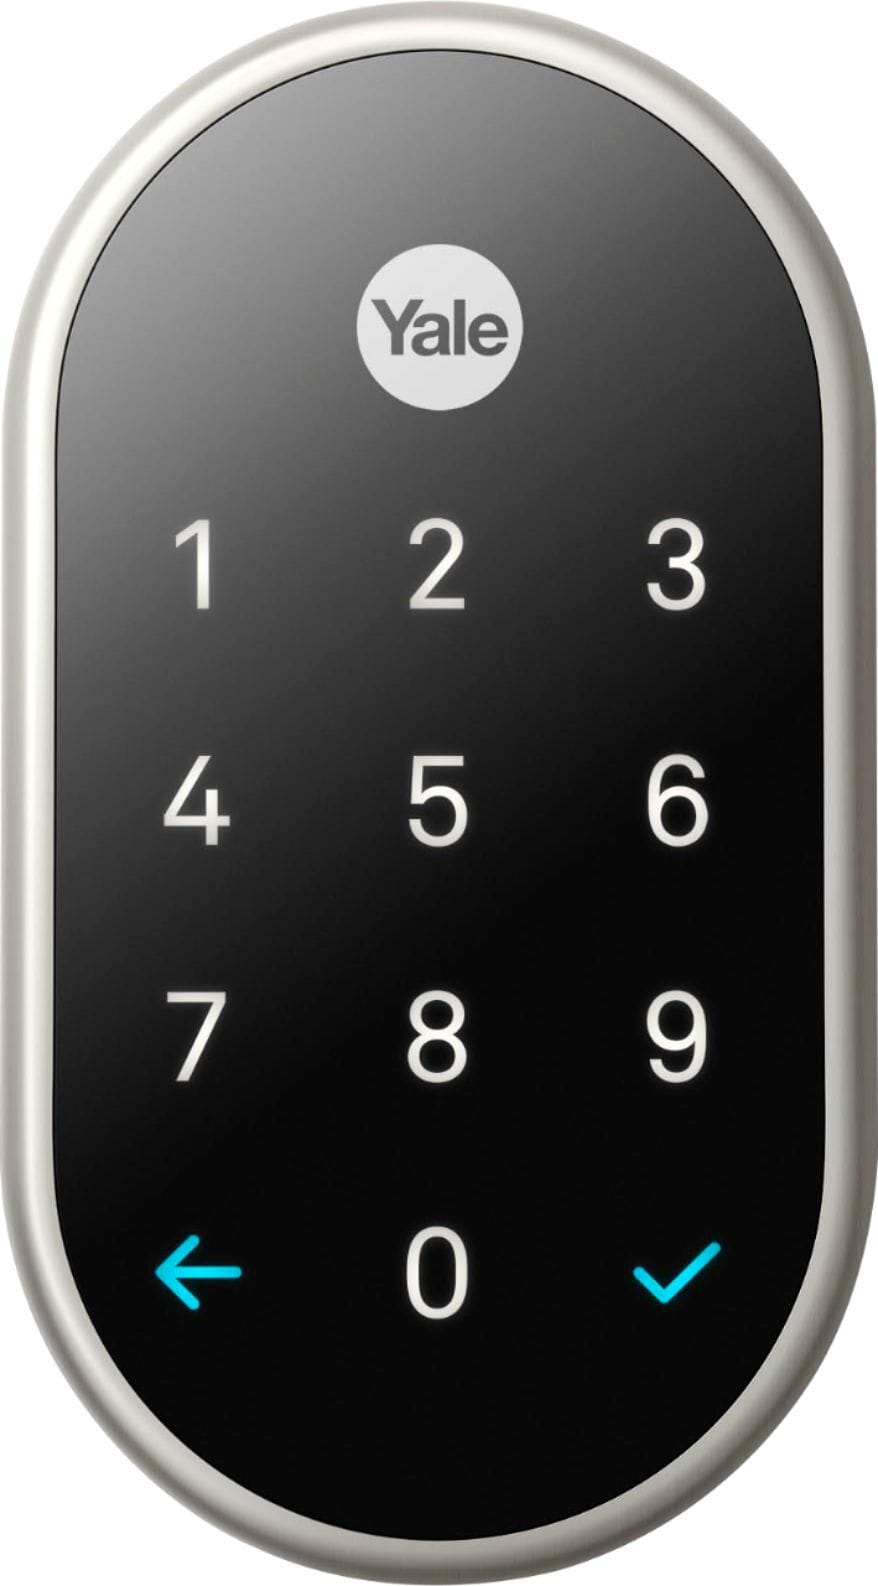 Nest Yale Lock for a Secure Connected Home